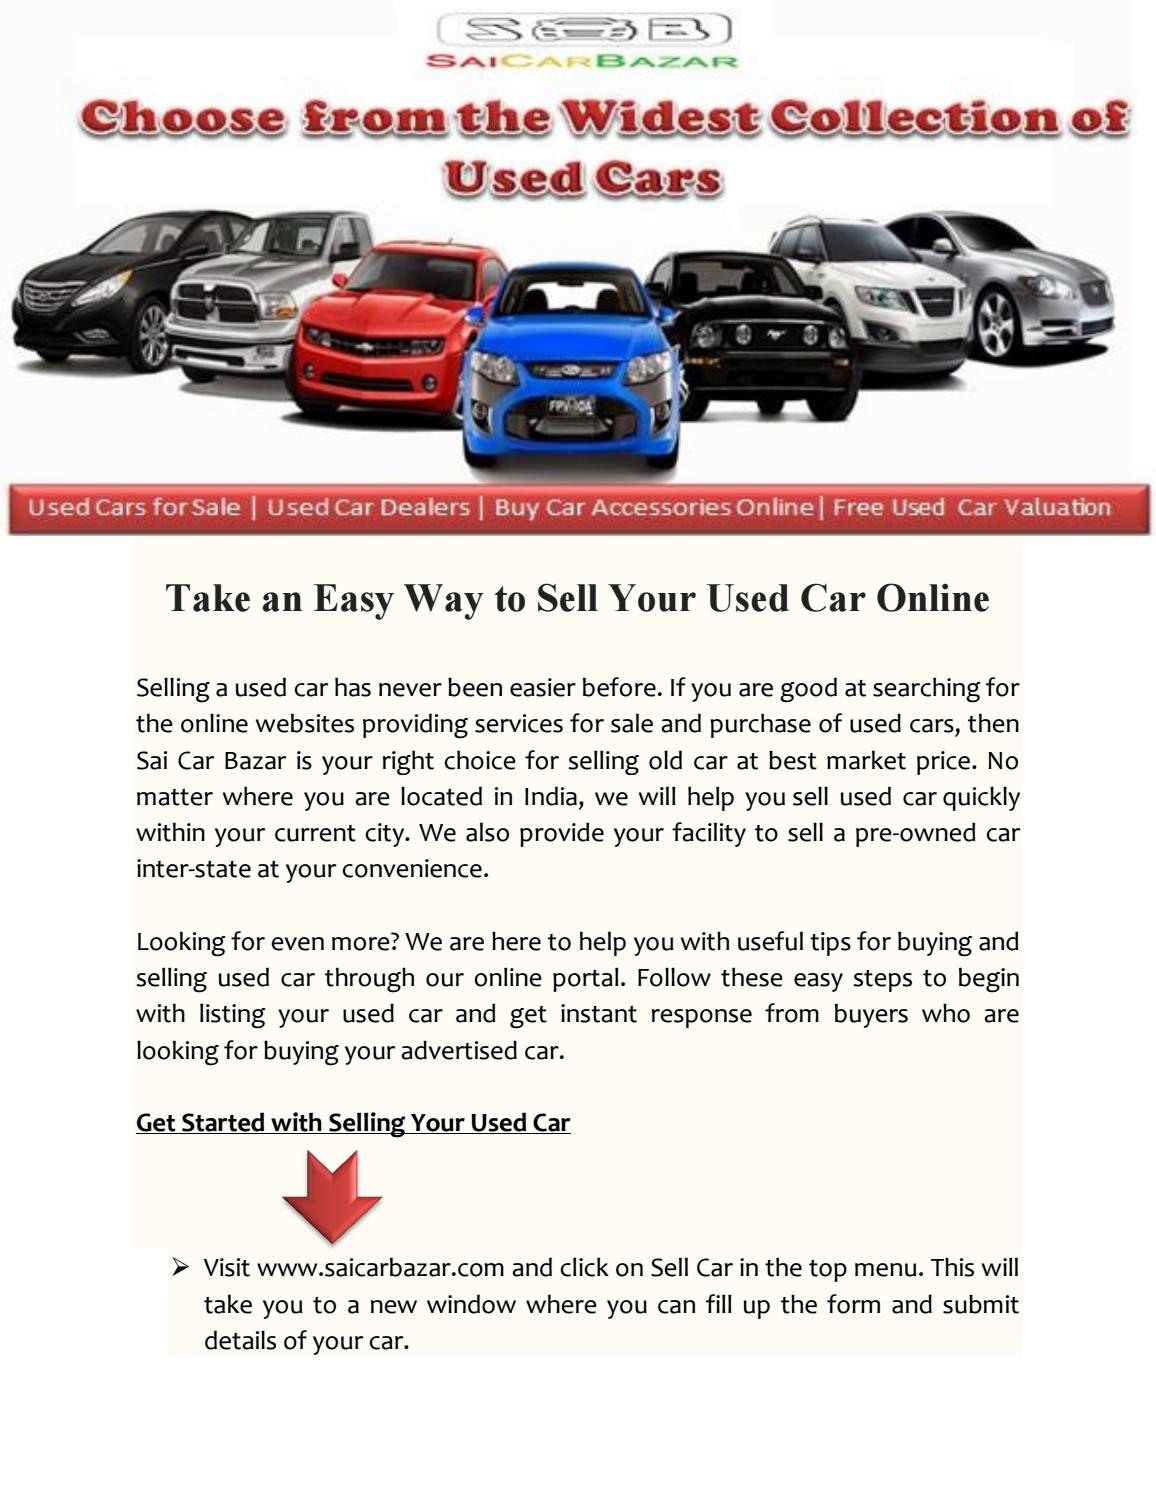 Sell Your Used Car Online by saicarbazar - issuu